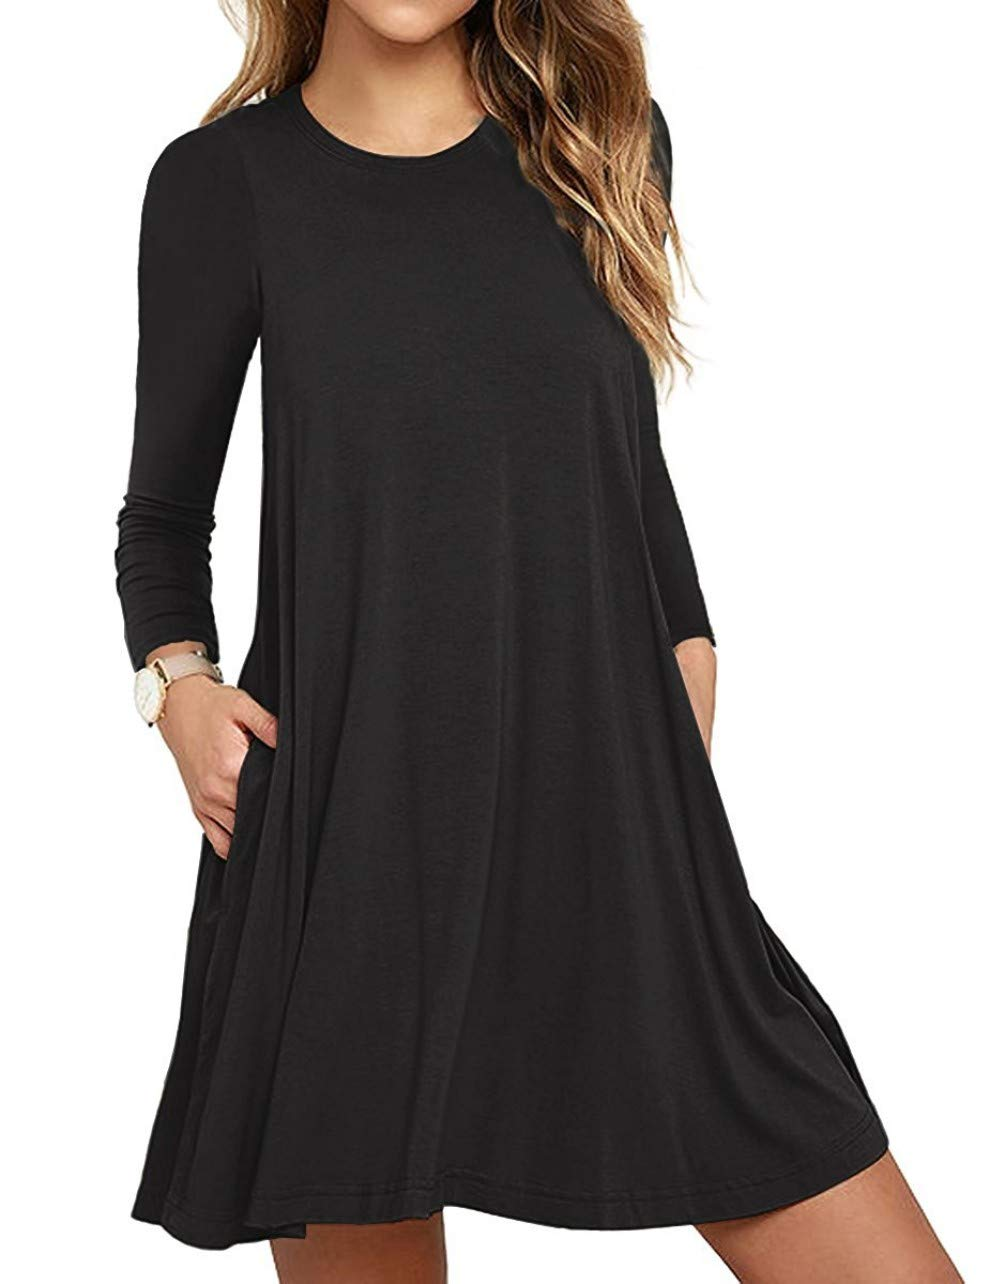 Unbranded* Women's Long Sleeve Pocket Casual Loose T-Shirt Dress Black Large - wiihuu